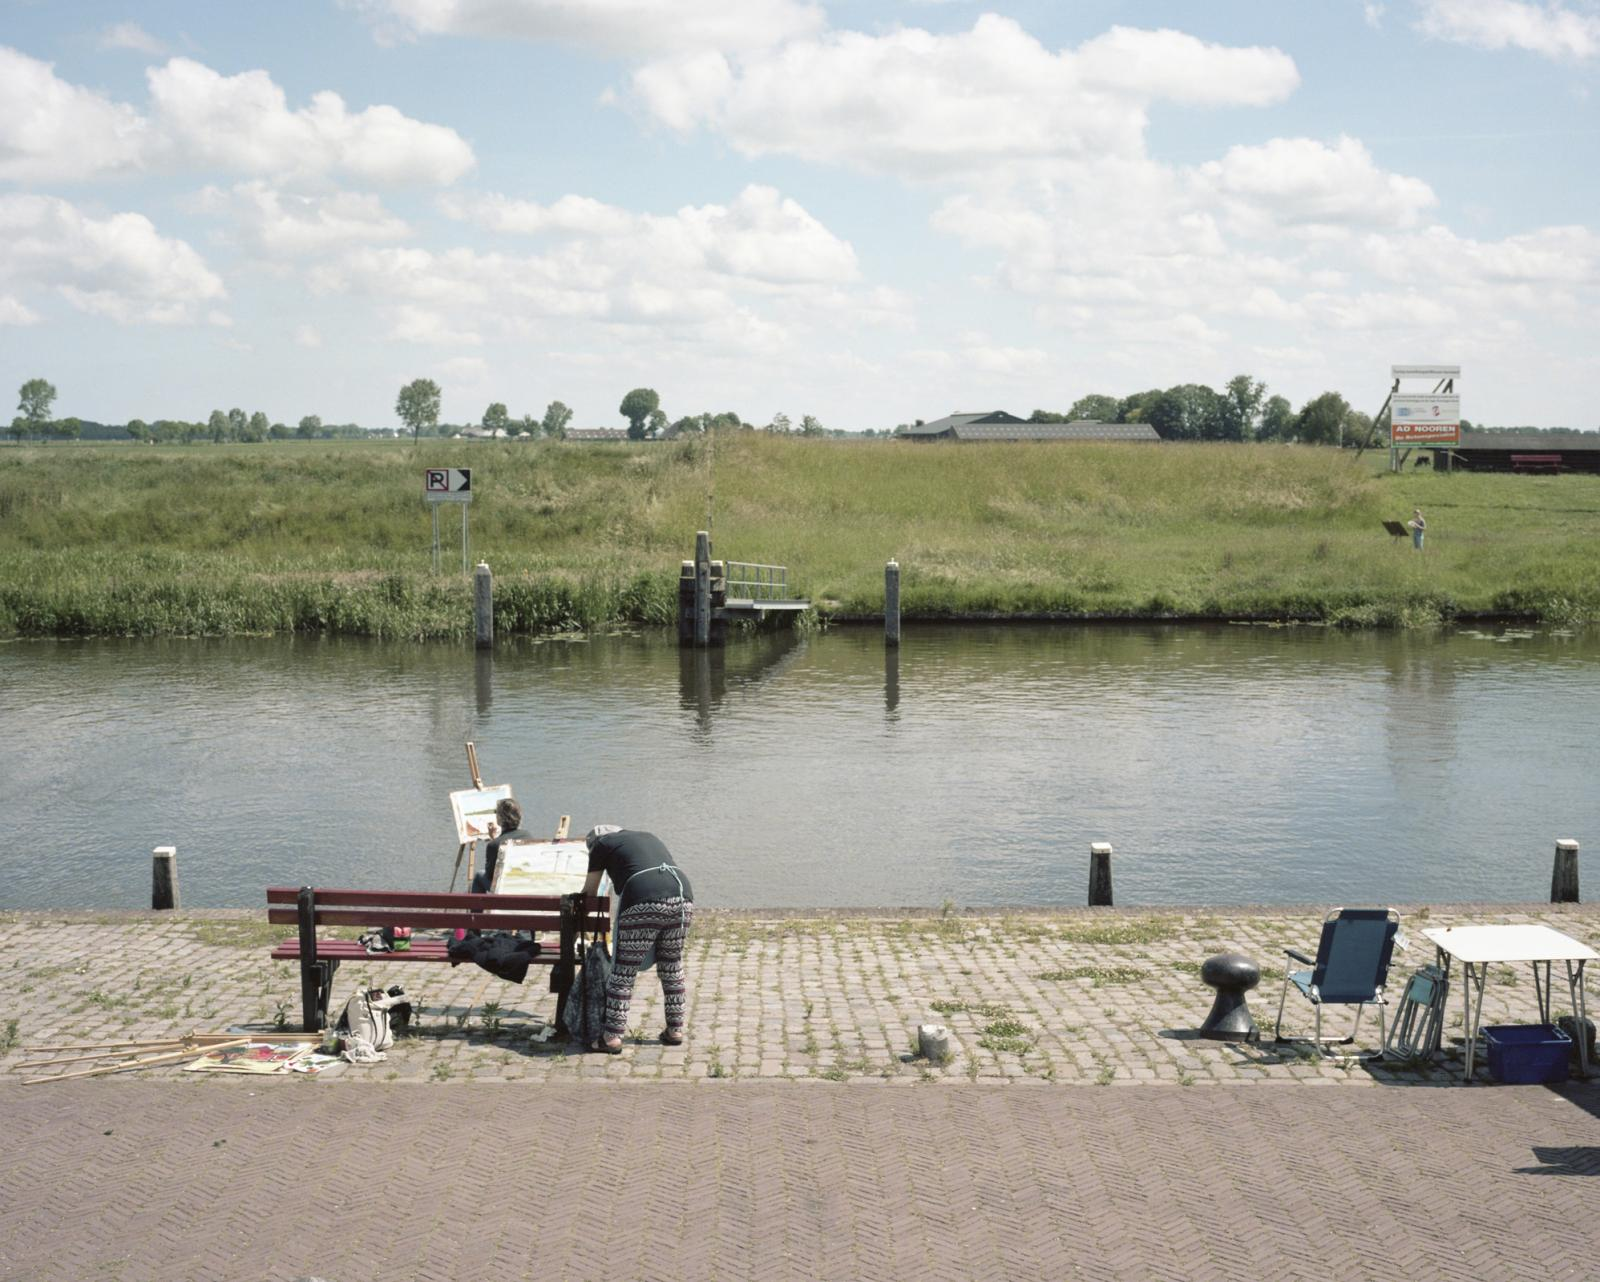 Netherlands, Garnwerd. People painting in front of a typical Dutch canal. The history of the Dutch canals is related to the construction of dykes used to obtain land from the sea, in fact most of the Netherlands is under the sea level. With the climate change and the rising of the sea level, Netherland is facing one of its biggest threats, despite the government is rising the dykes but several Dutch scientists are convinced that this won't be enough and that the country landscape will irreparably change with the rising of the ocean.